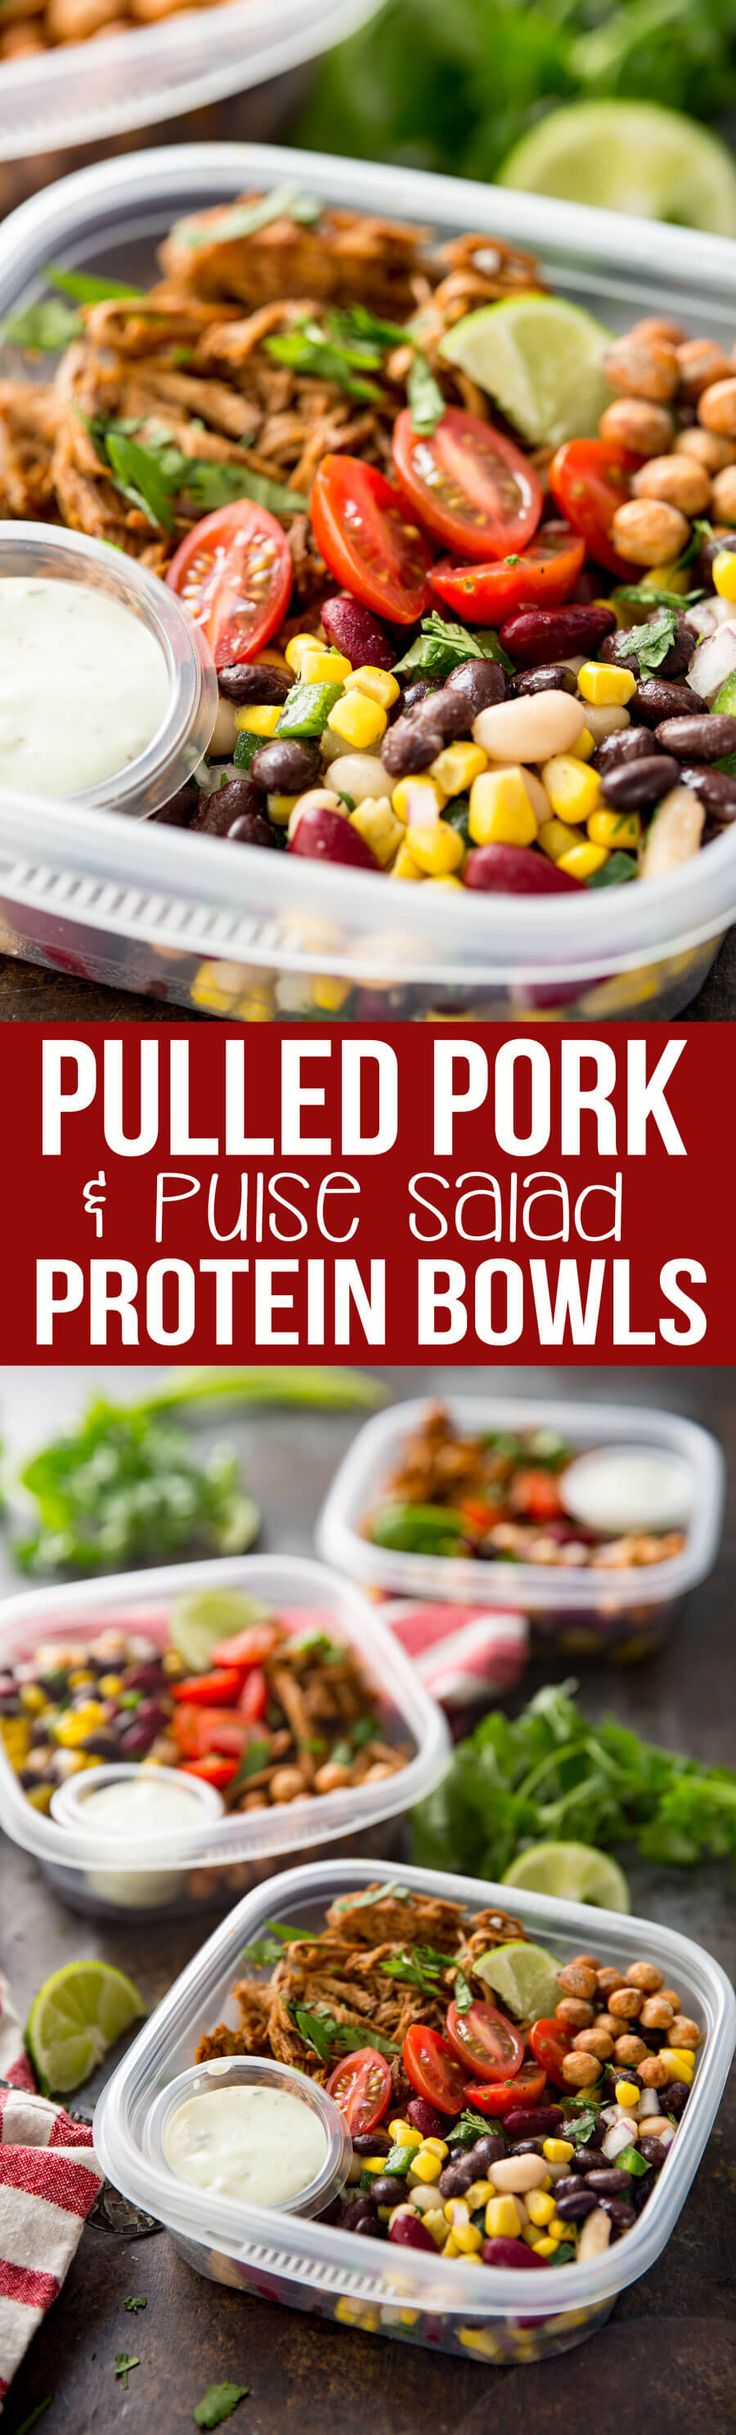 Pulled Pork Pulse Protein Bowl